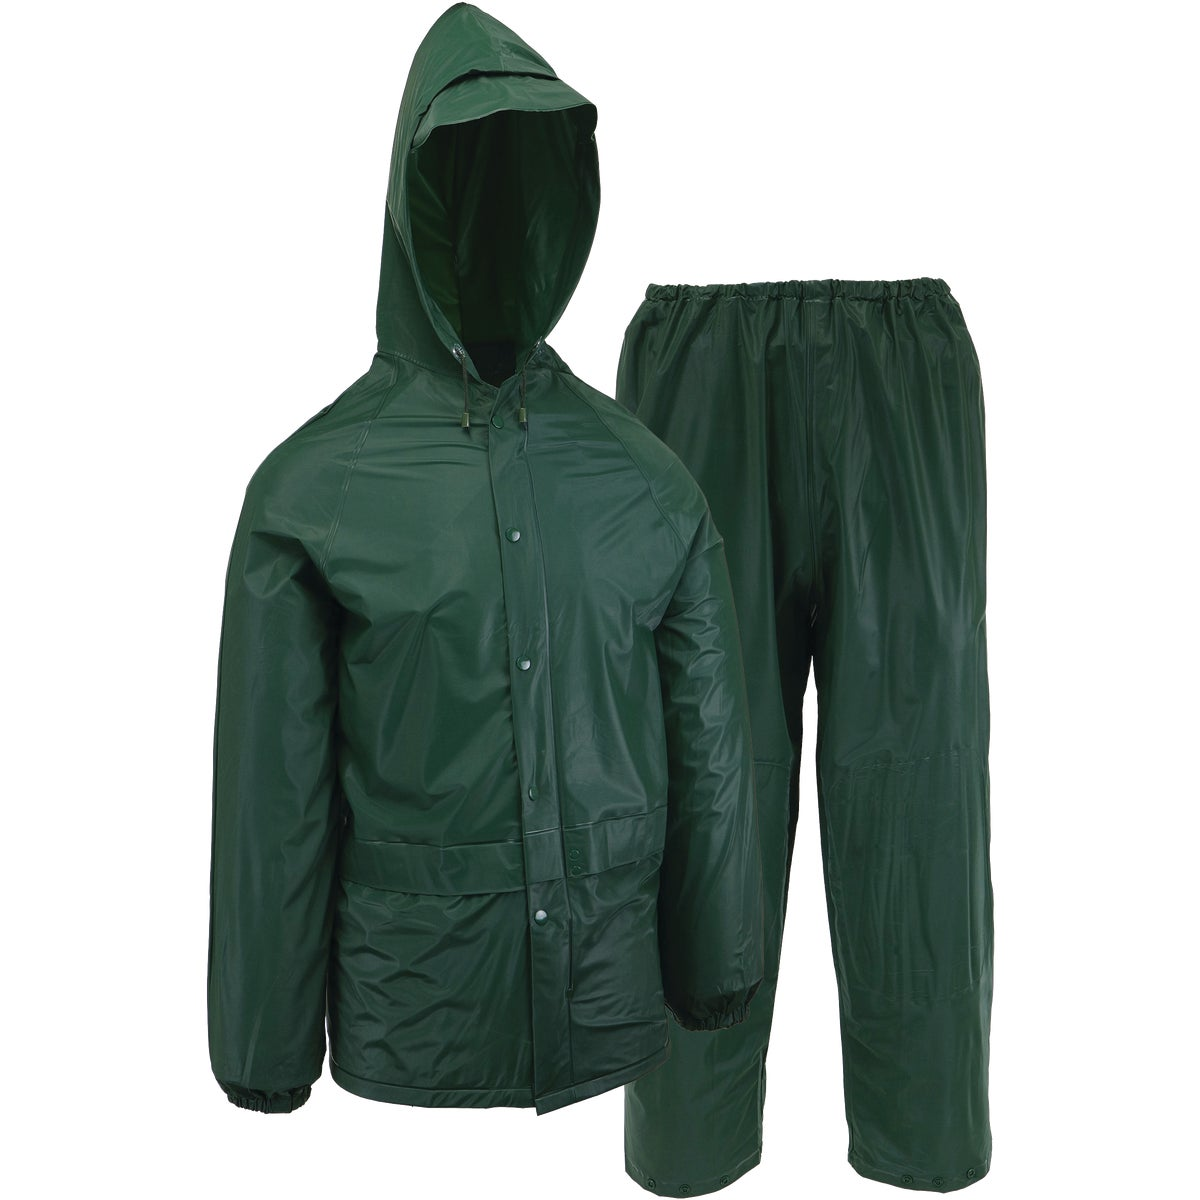 XL 35MM 3PC GRN RAINSUIT - R131X by Custom Leathercraft